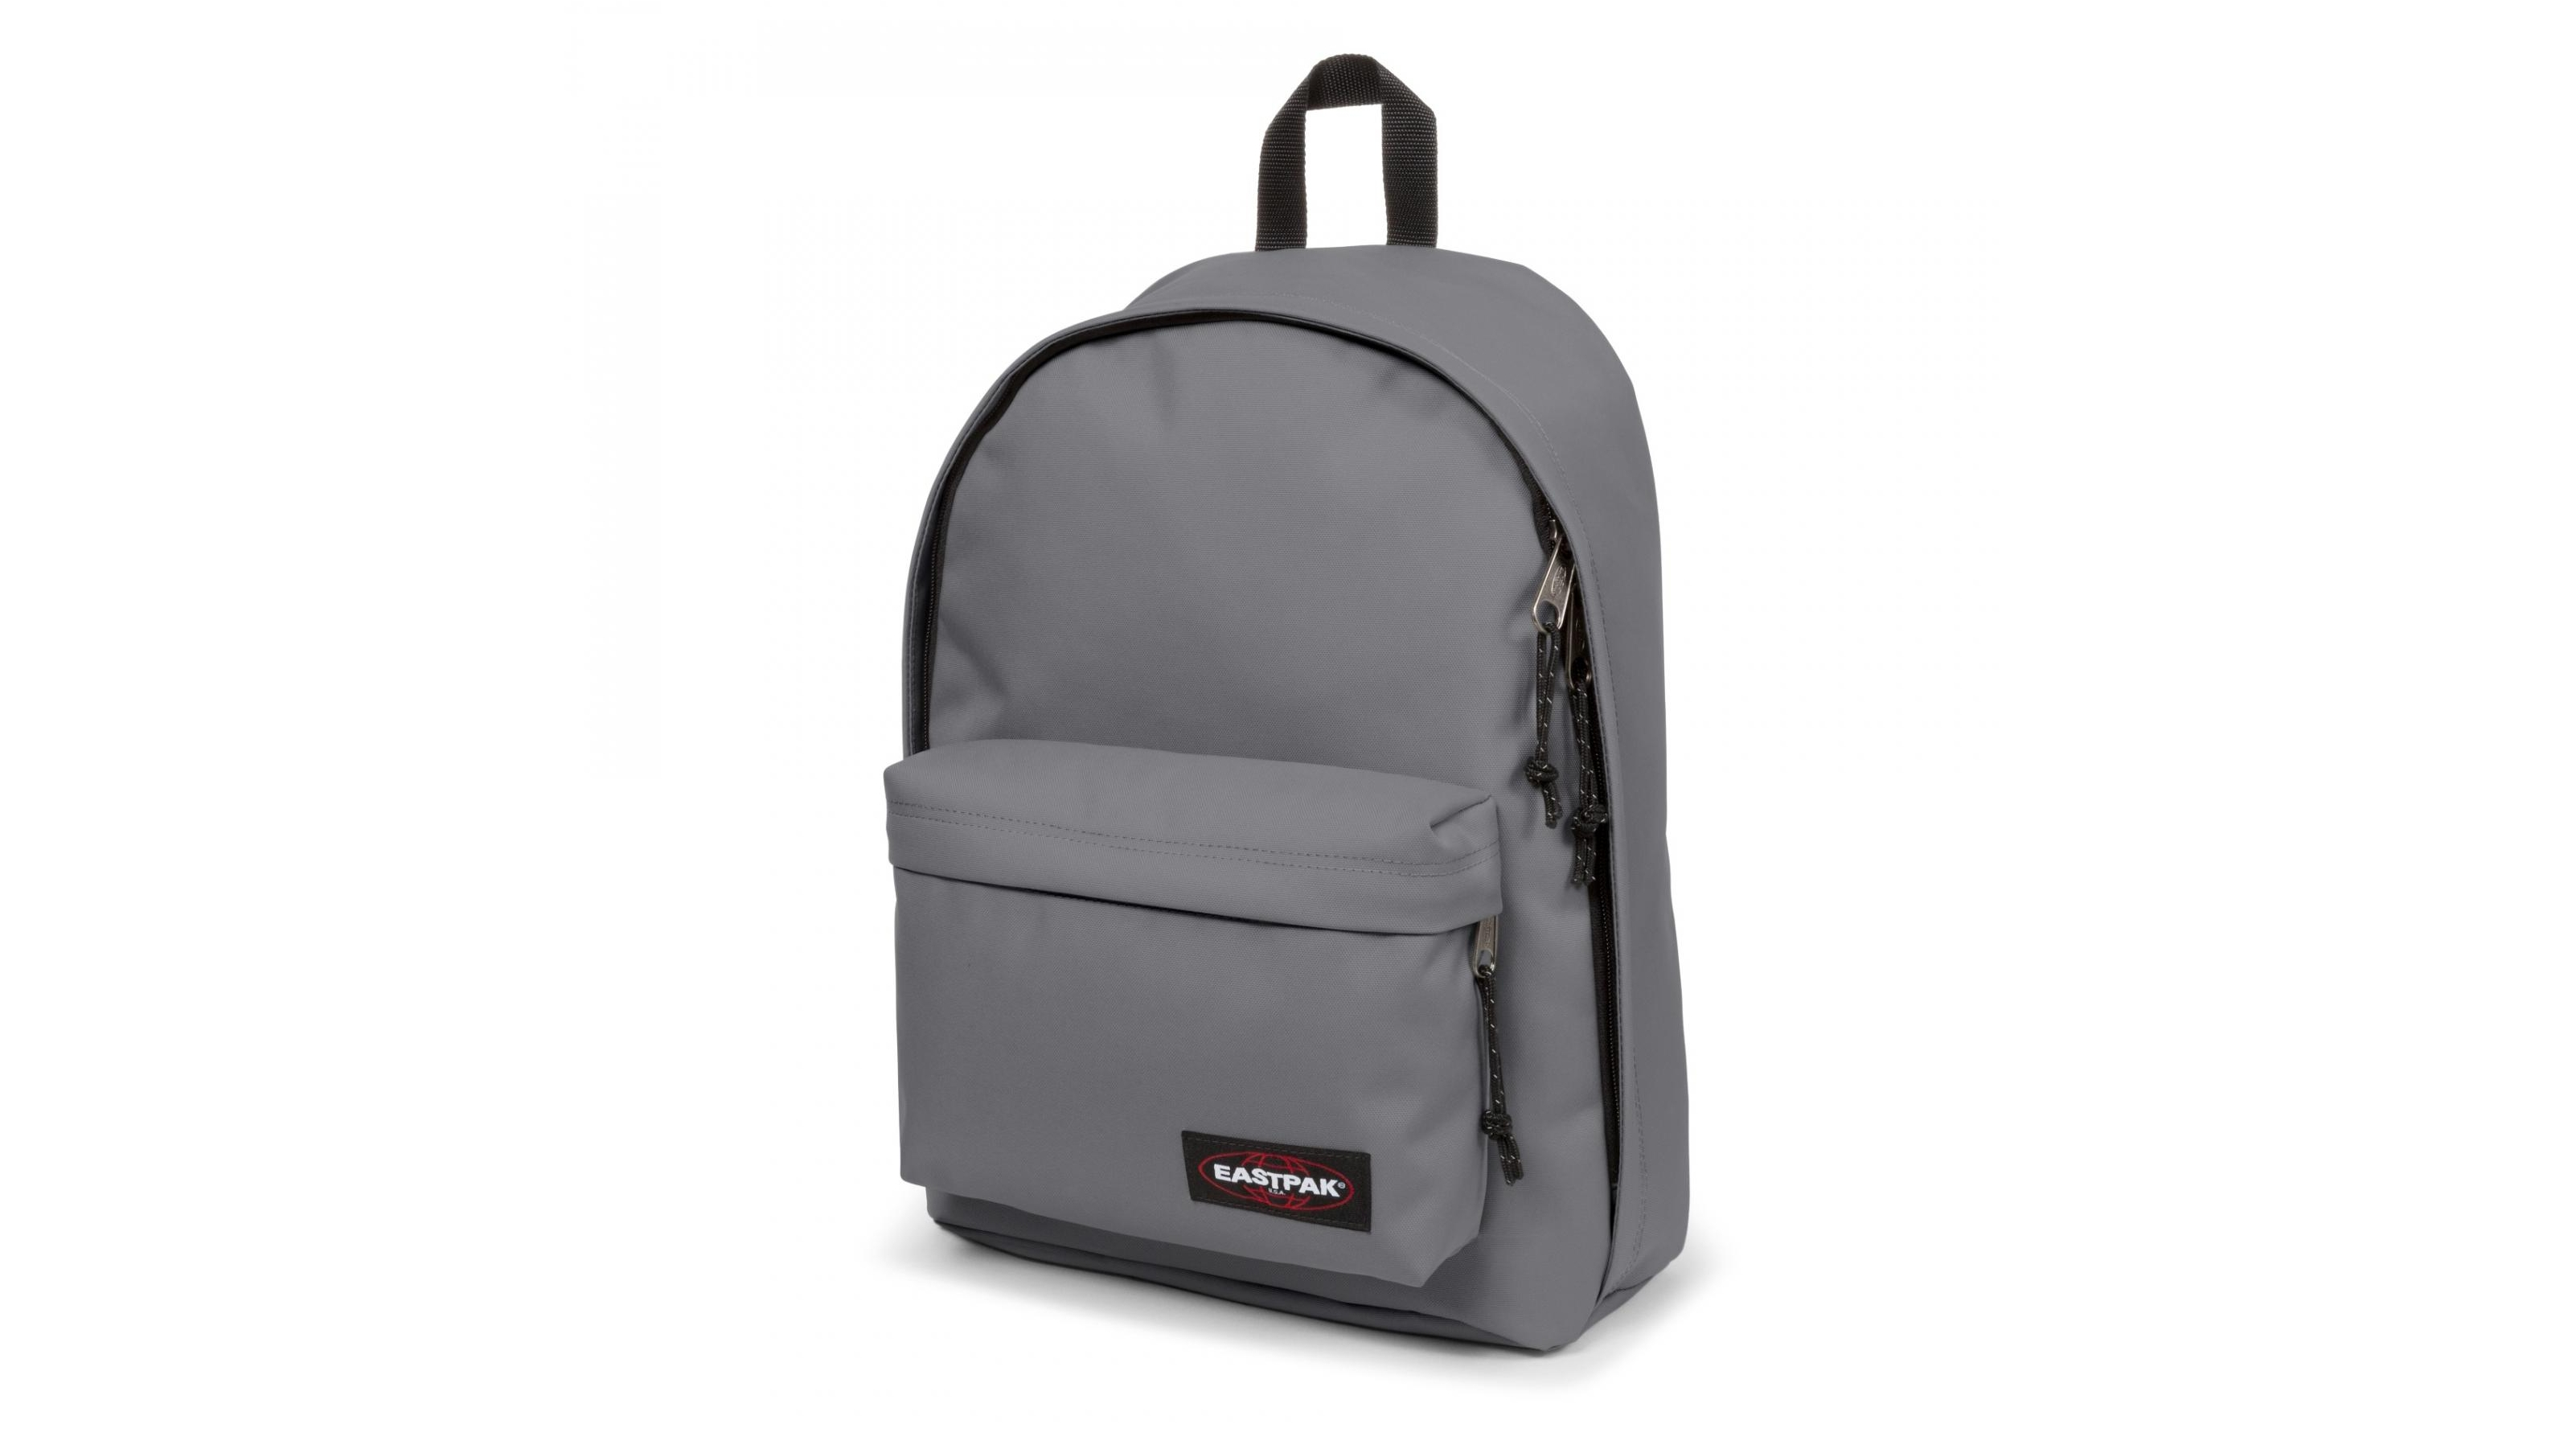 ce3be710c28 Buy Eastpak Out of Office Laptop Bag - Woven Grey | Harvey Norman AU